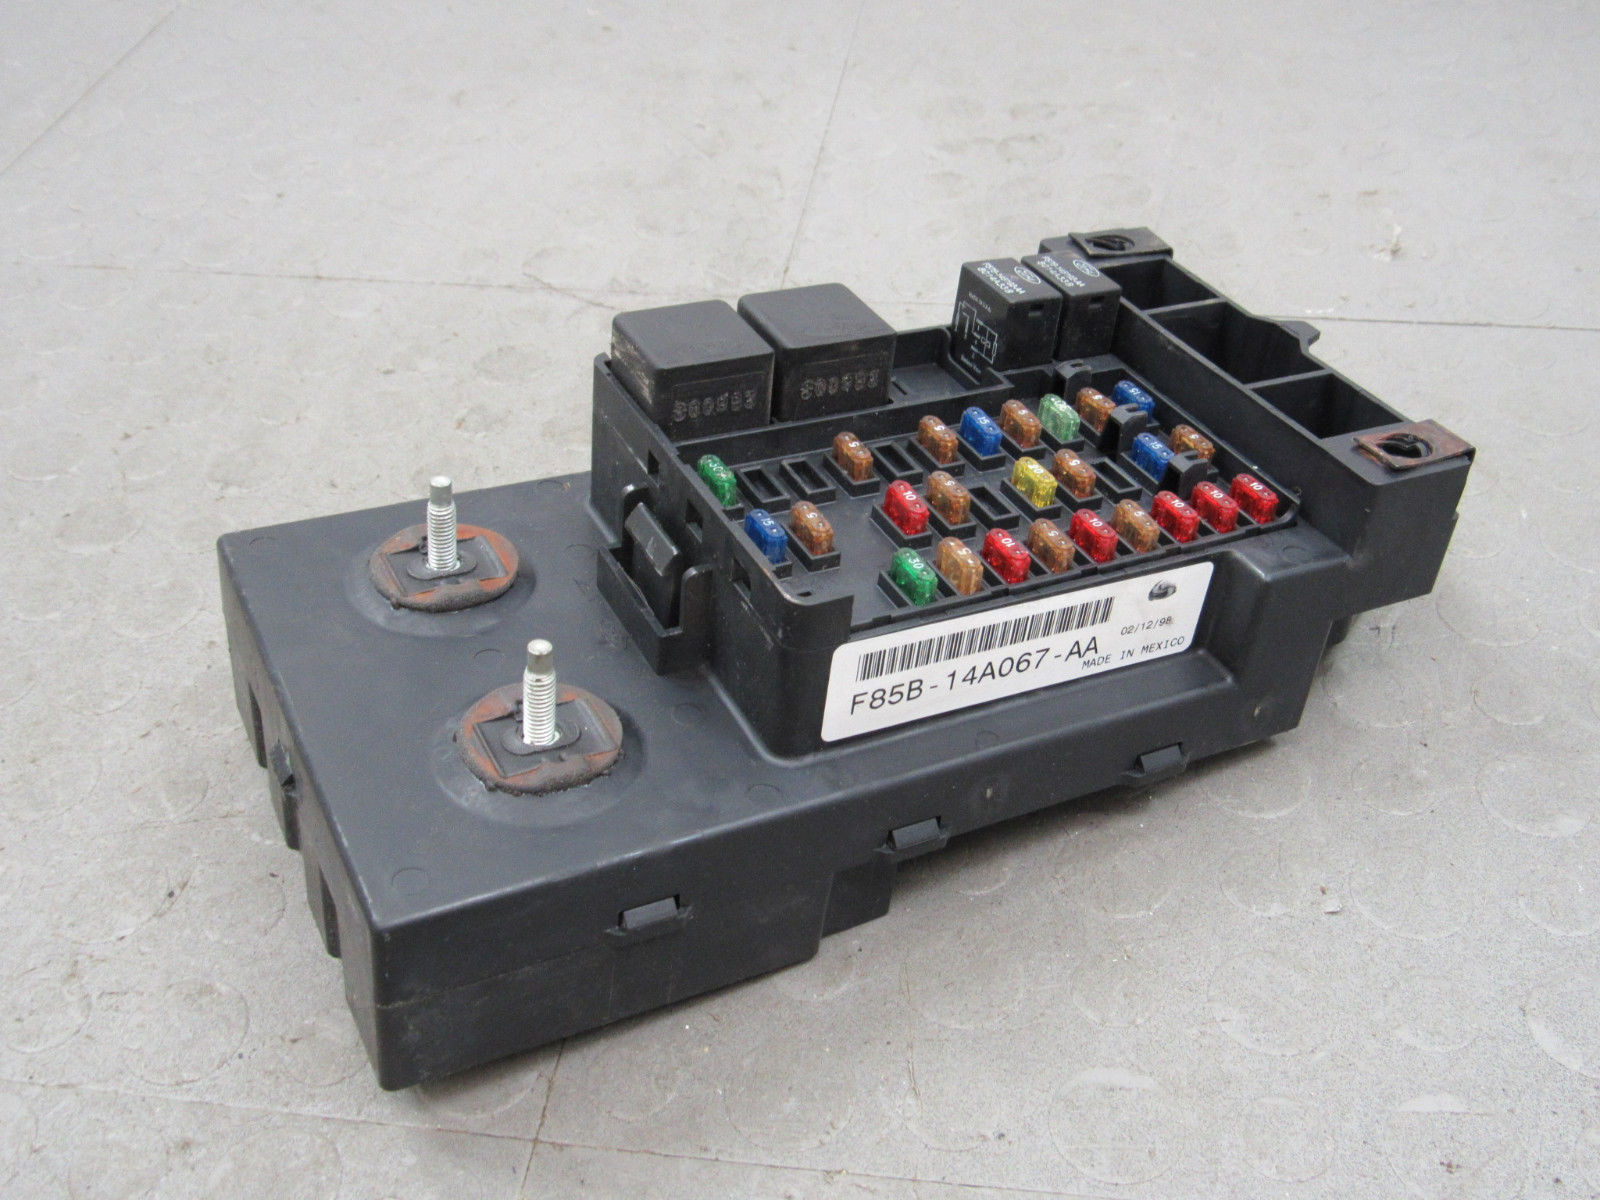 97-98 ford f150 interior dash fuse box junction relay block f85b-14a067-aa p